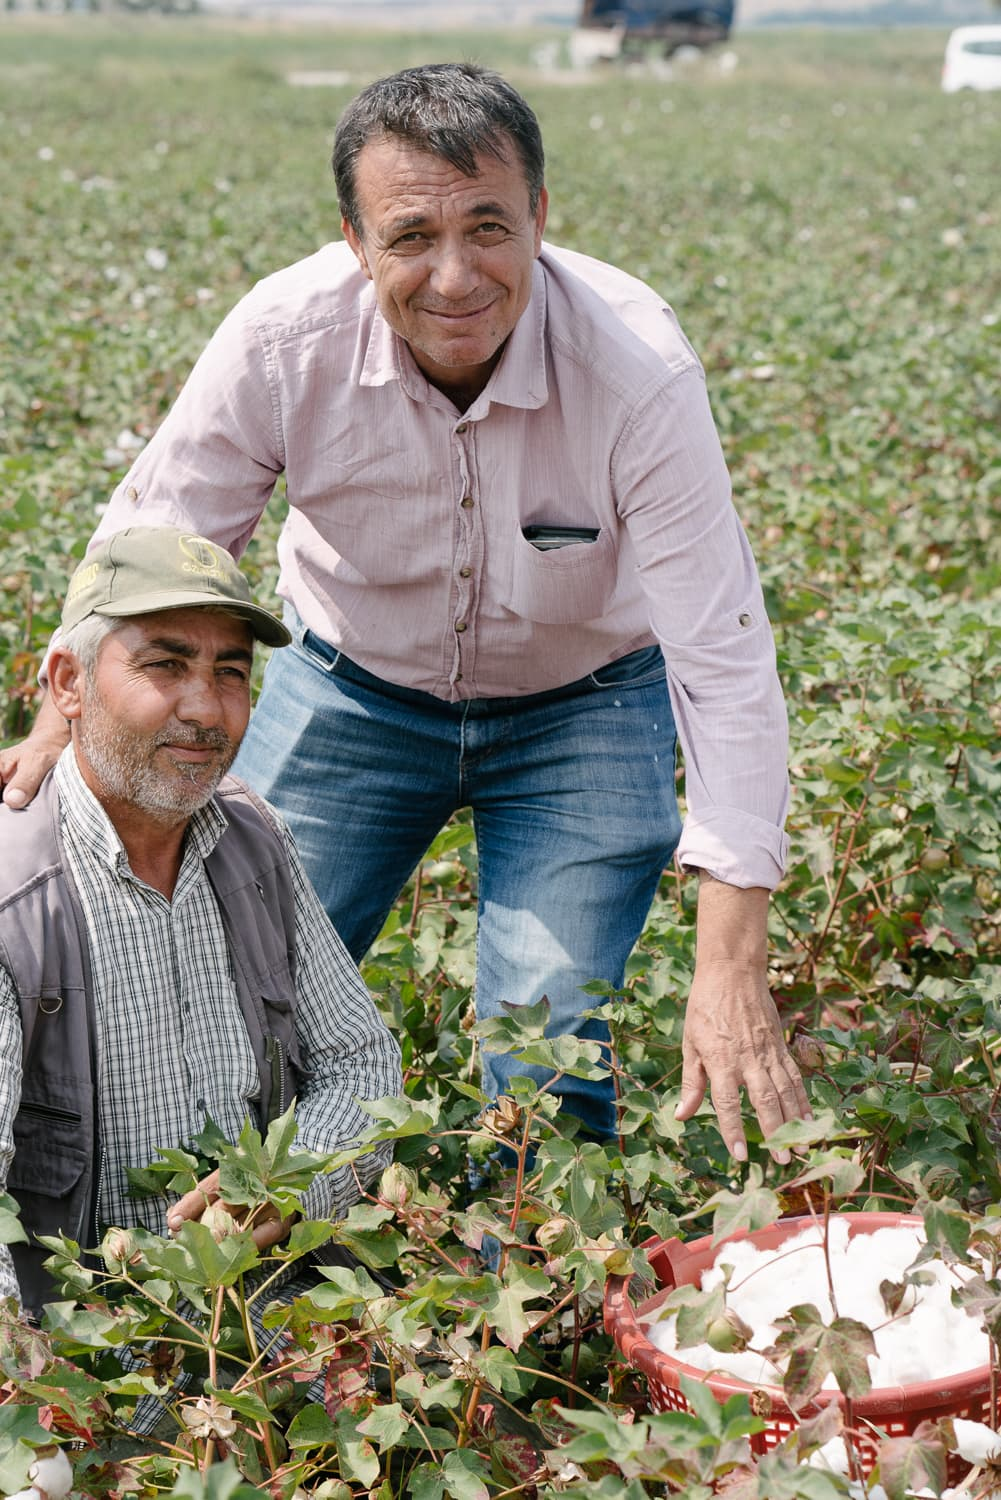 Organic cotton pickers in a field in Turkey